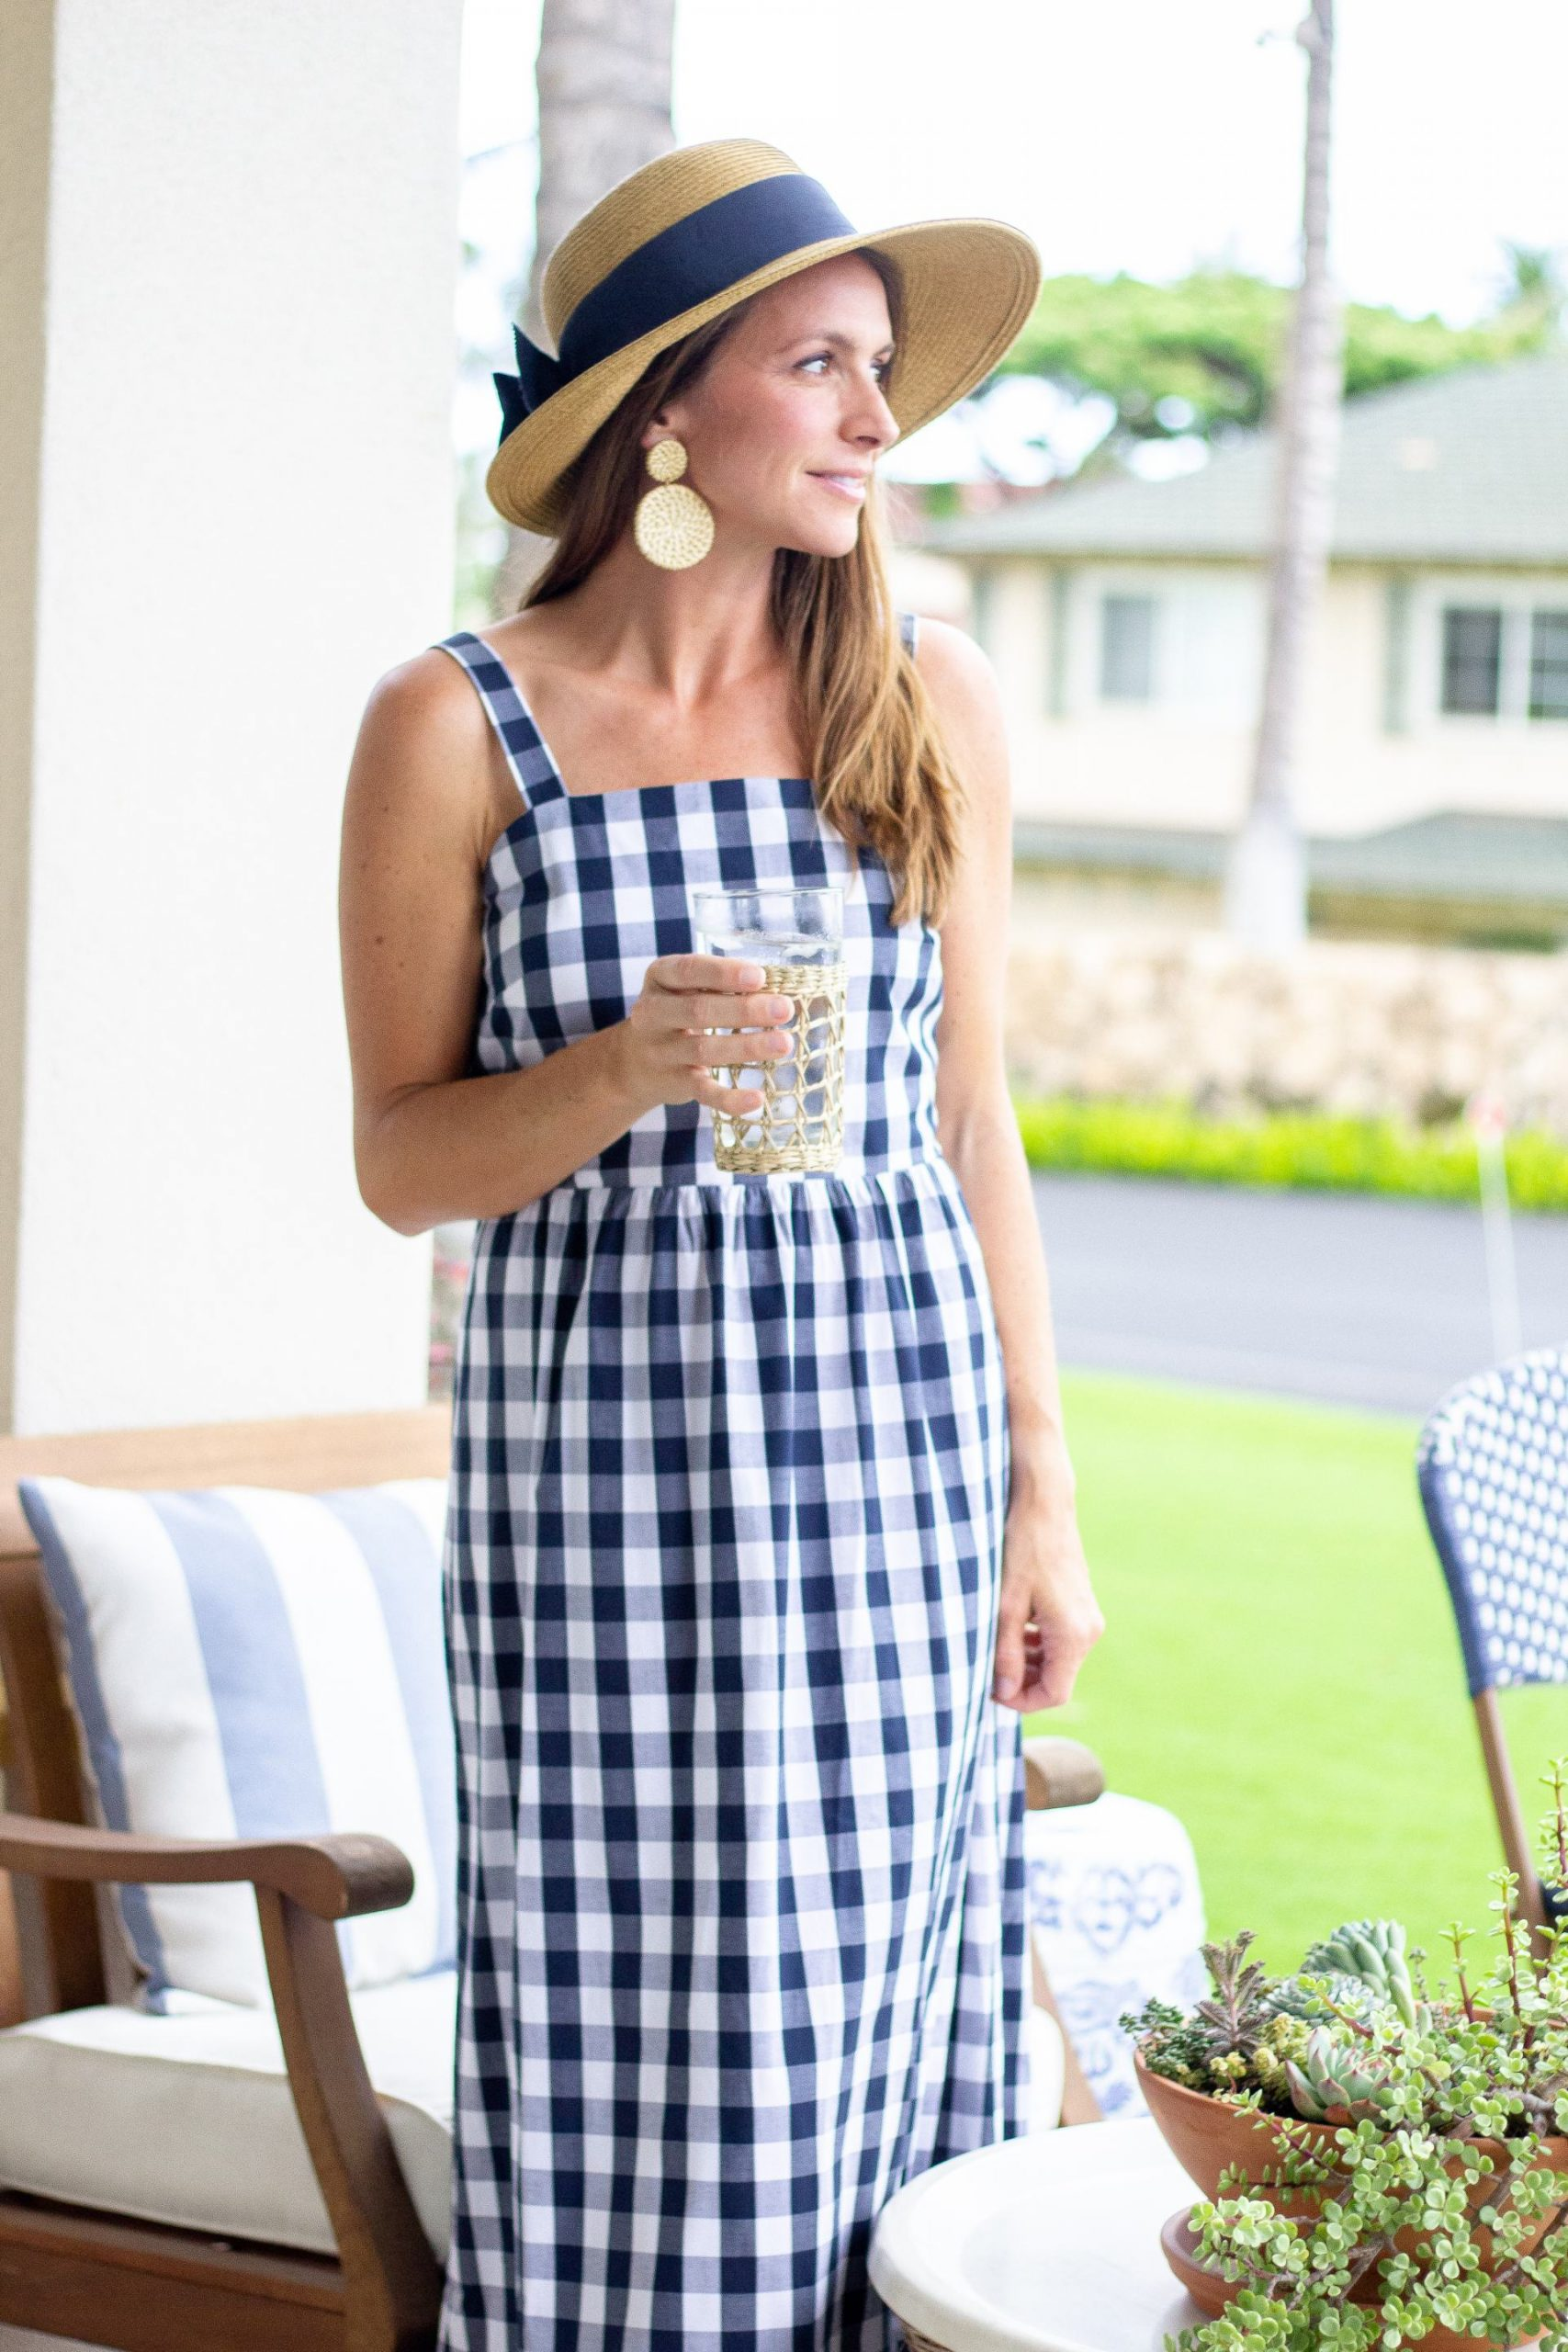 serena and lily style - patio decor - outdoor decor - blue and white - coastal style - nautical style - serena and lily inspo - outdoor furniture - porch decor - outdoor living - outdoor spaces - bistro table - bistro chair - bistro set - stripes - outdoor rug - blue and white dress - gingham dress - coastal style - rattan earrings - tuckernuck bow sunhat